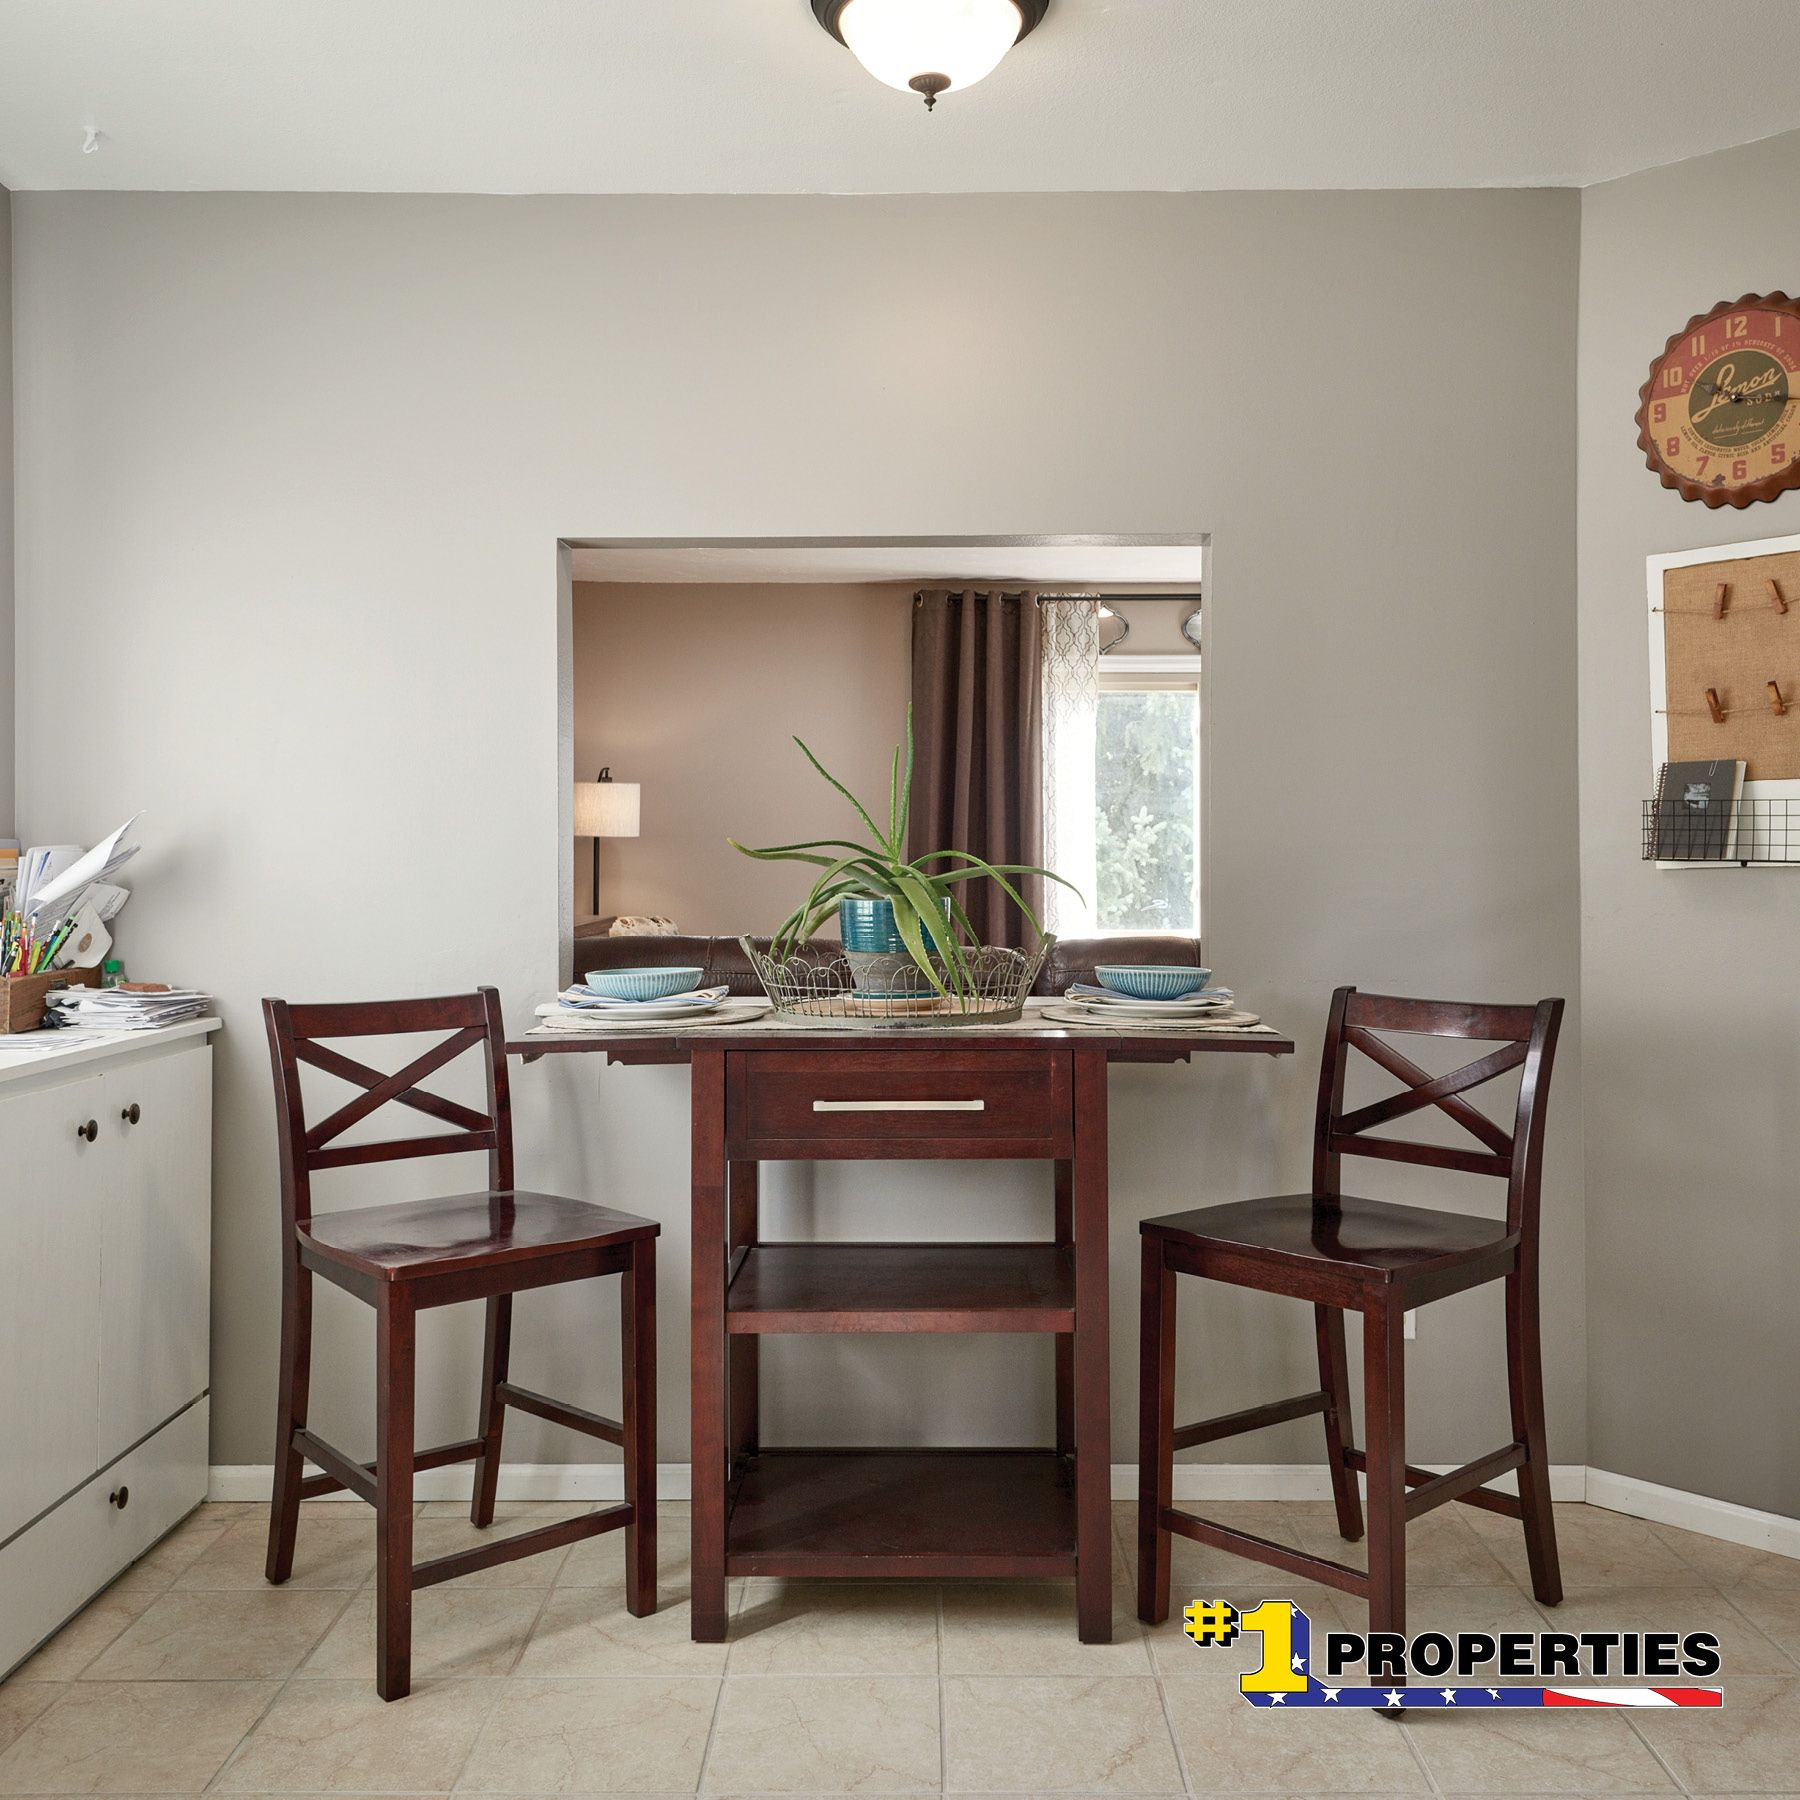 Love This Brunch For Two Nook Openhousesunday 2508 Council Bluff Cheyenne Wyoming Cheyennehomes Realestate Hous Real Estate Home Real Estate Photography